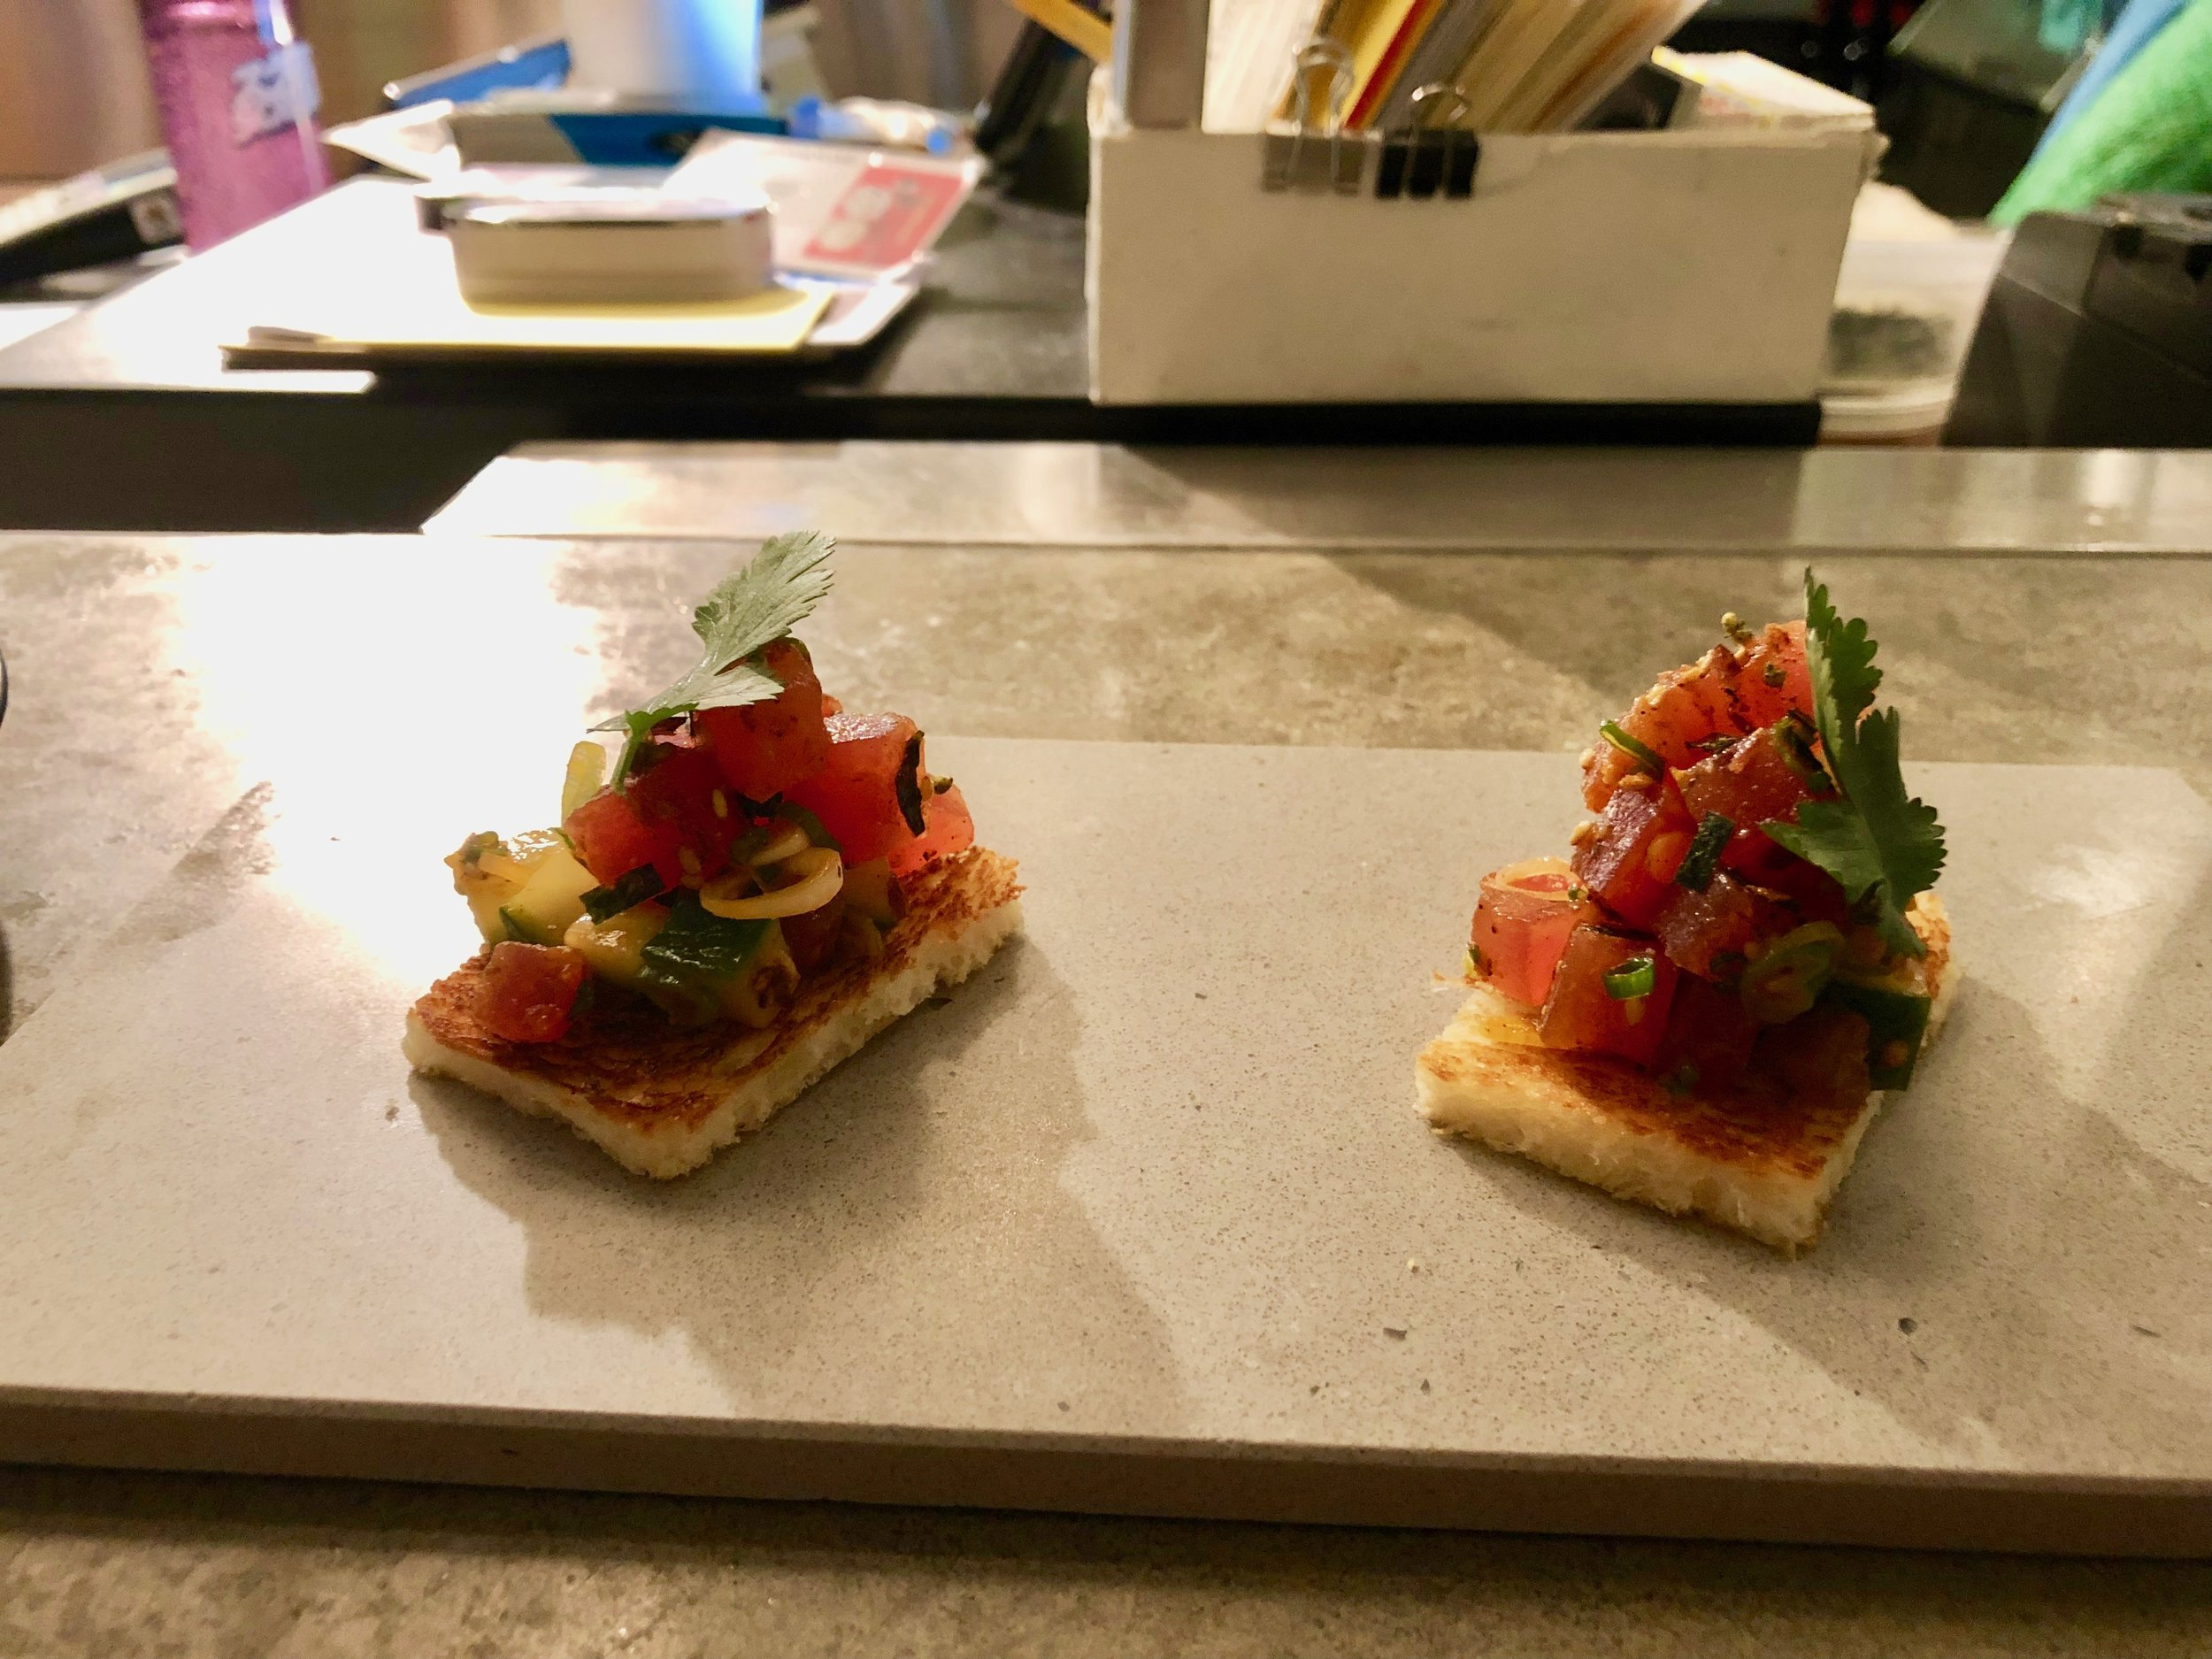 The best things since slice bread - it just doesn't work… - Ahi tuna